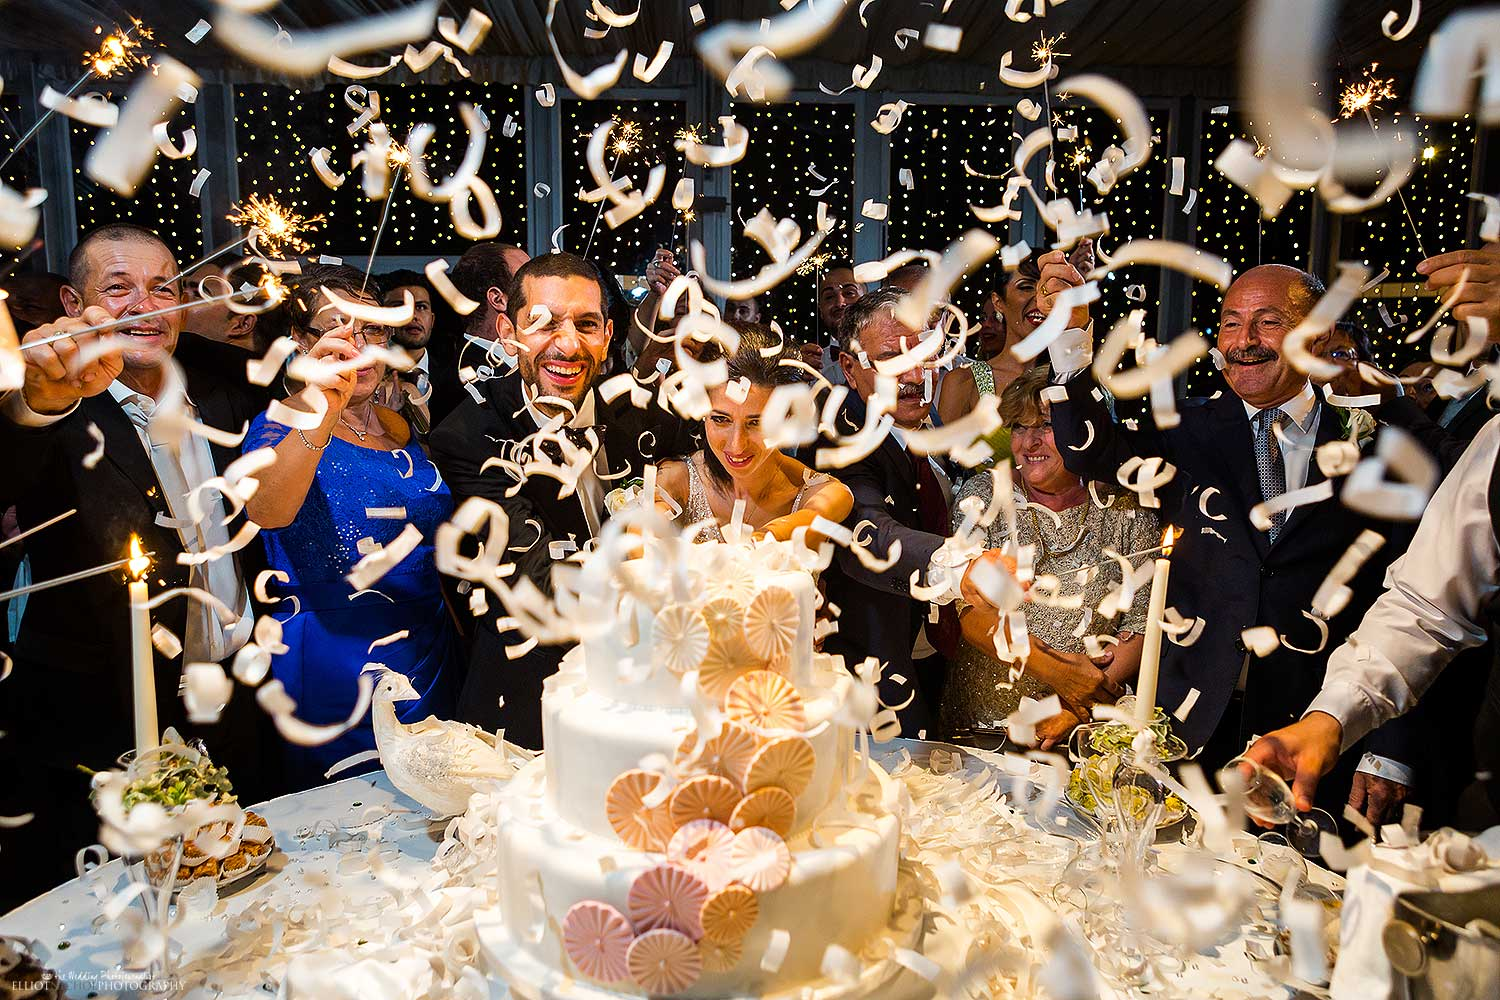 Explosion of confetti during the wedding cake cut. Photo by Elliot Nichol Photography.